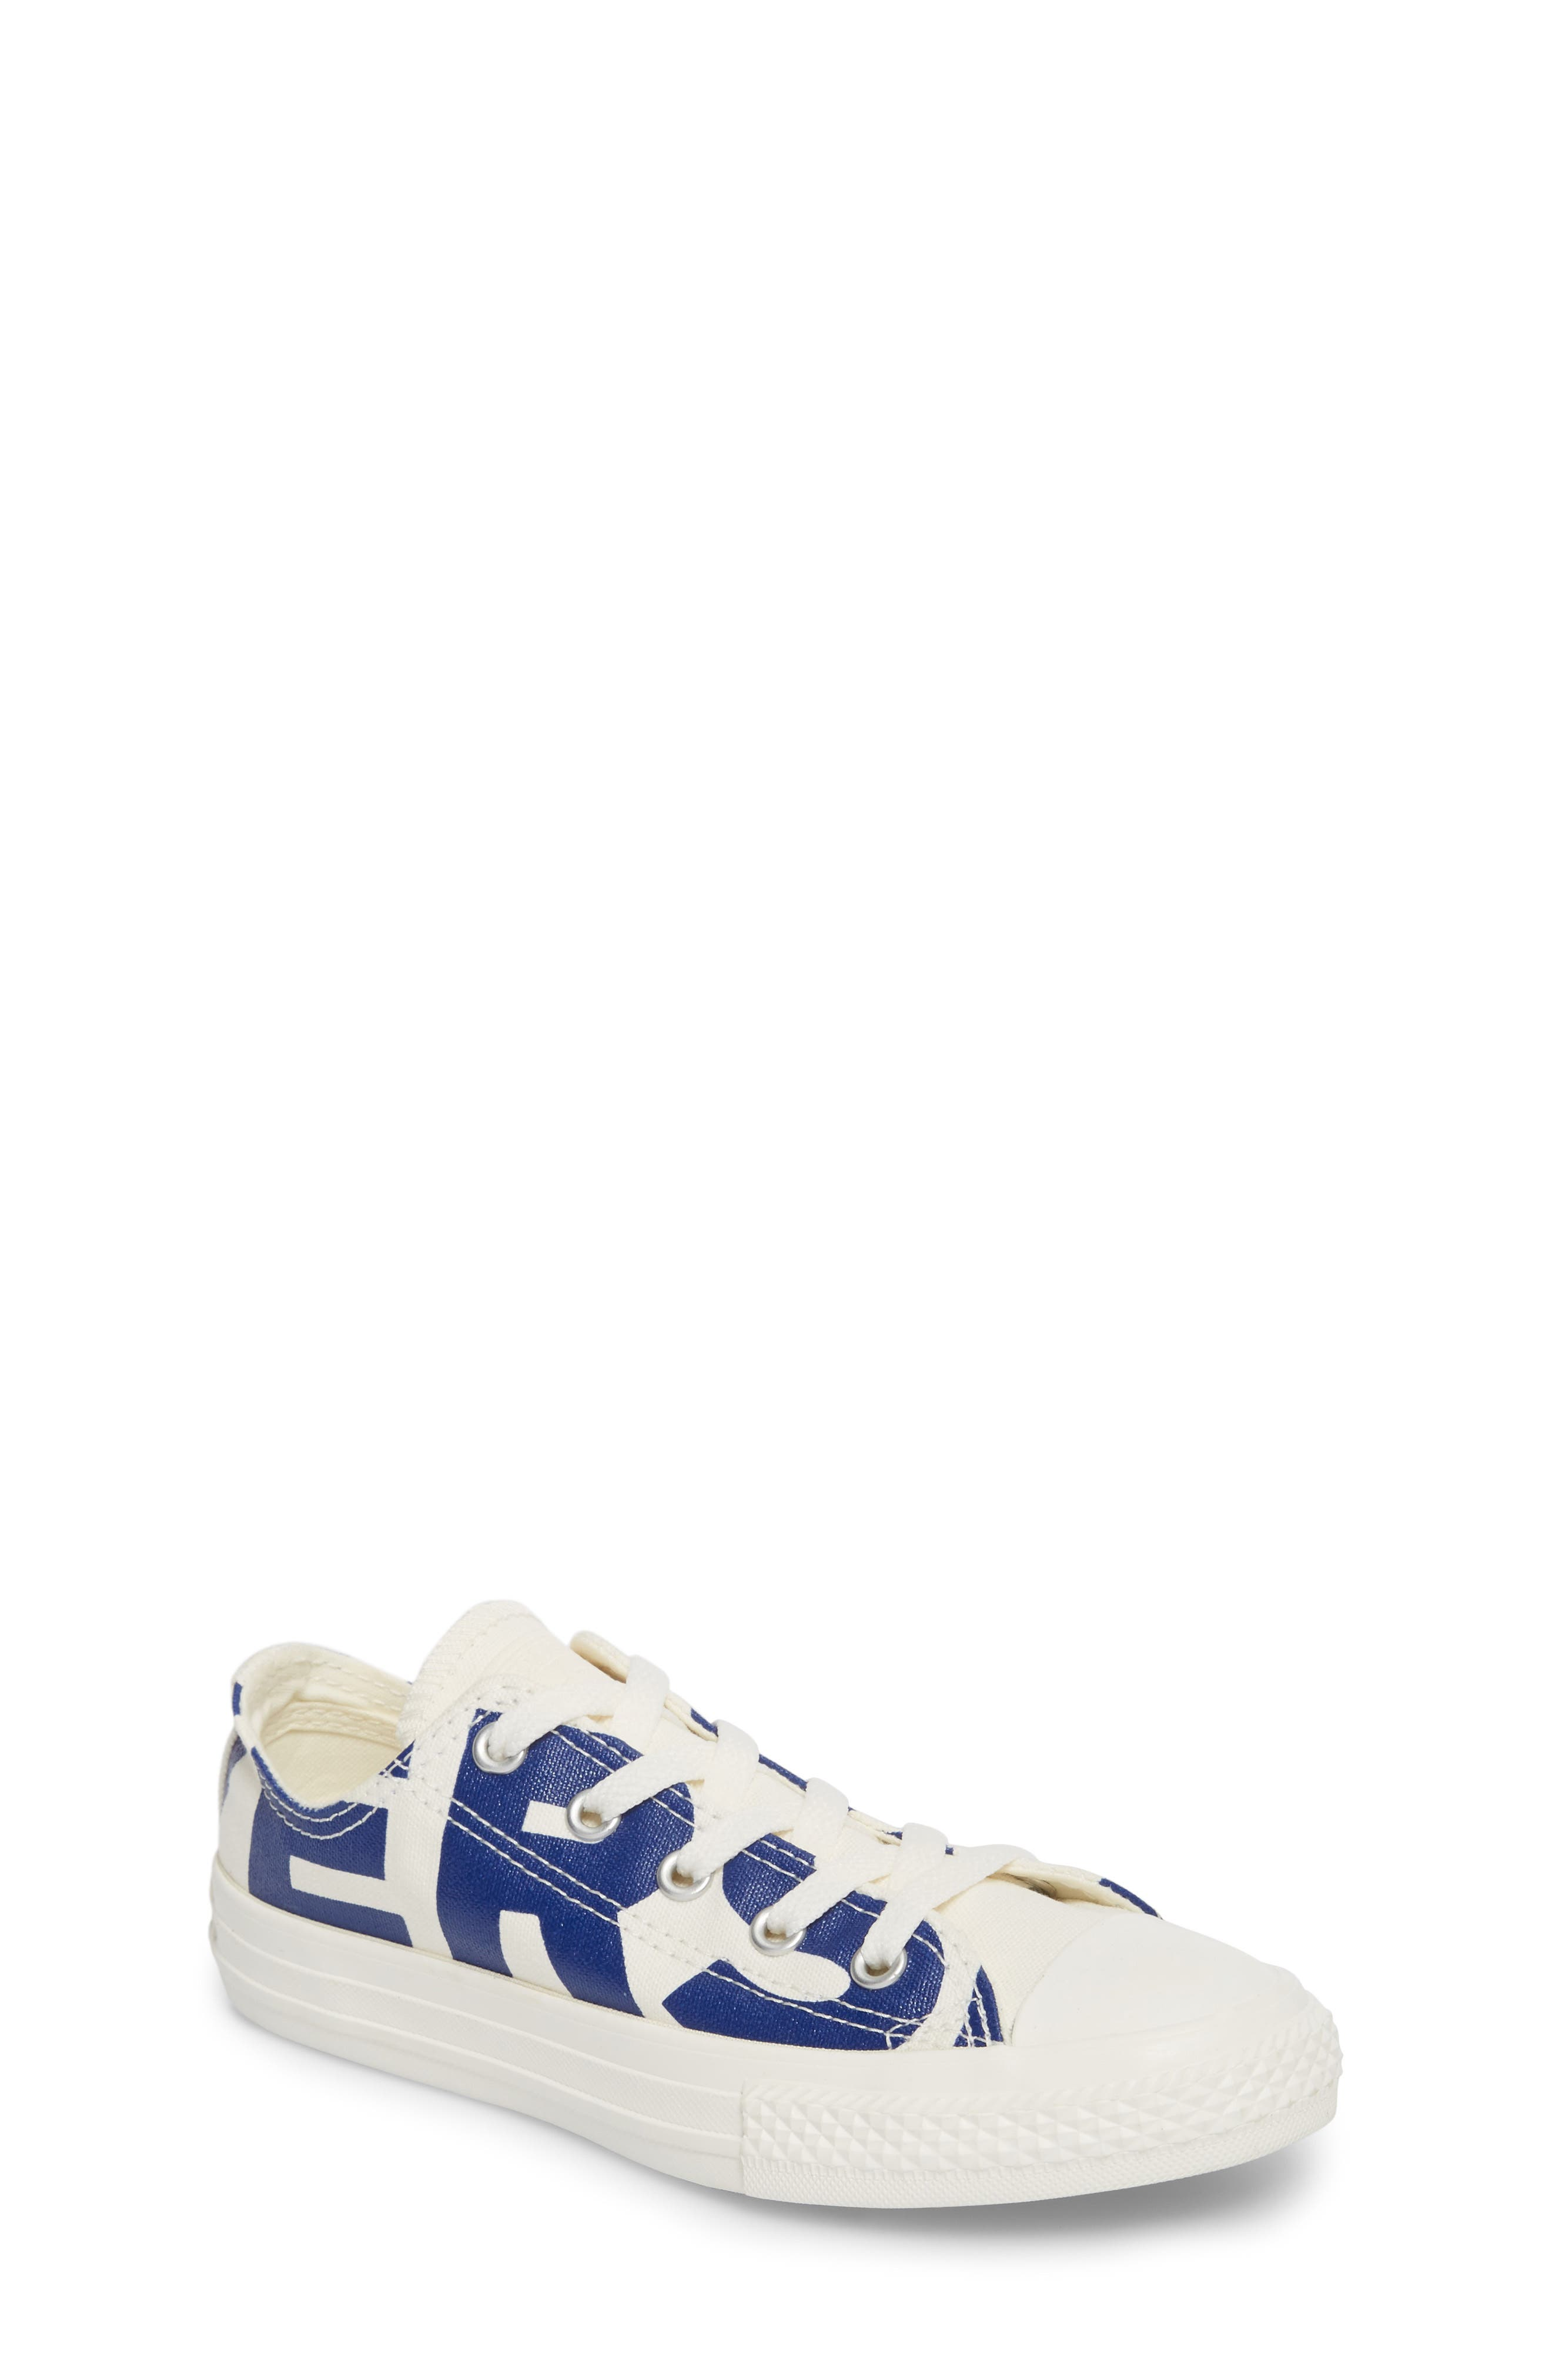 All Star<sup>®</sup> Wordmark OX Low Top Sneaker,                         Main,                         color, 400